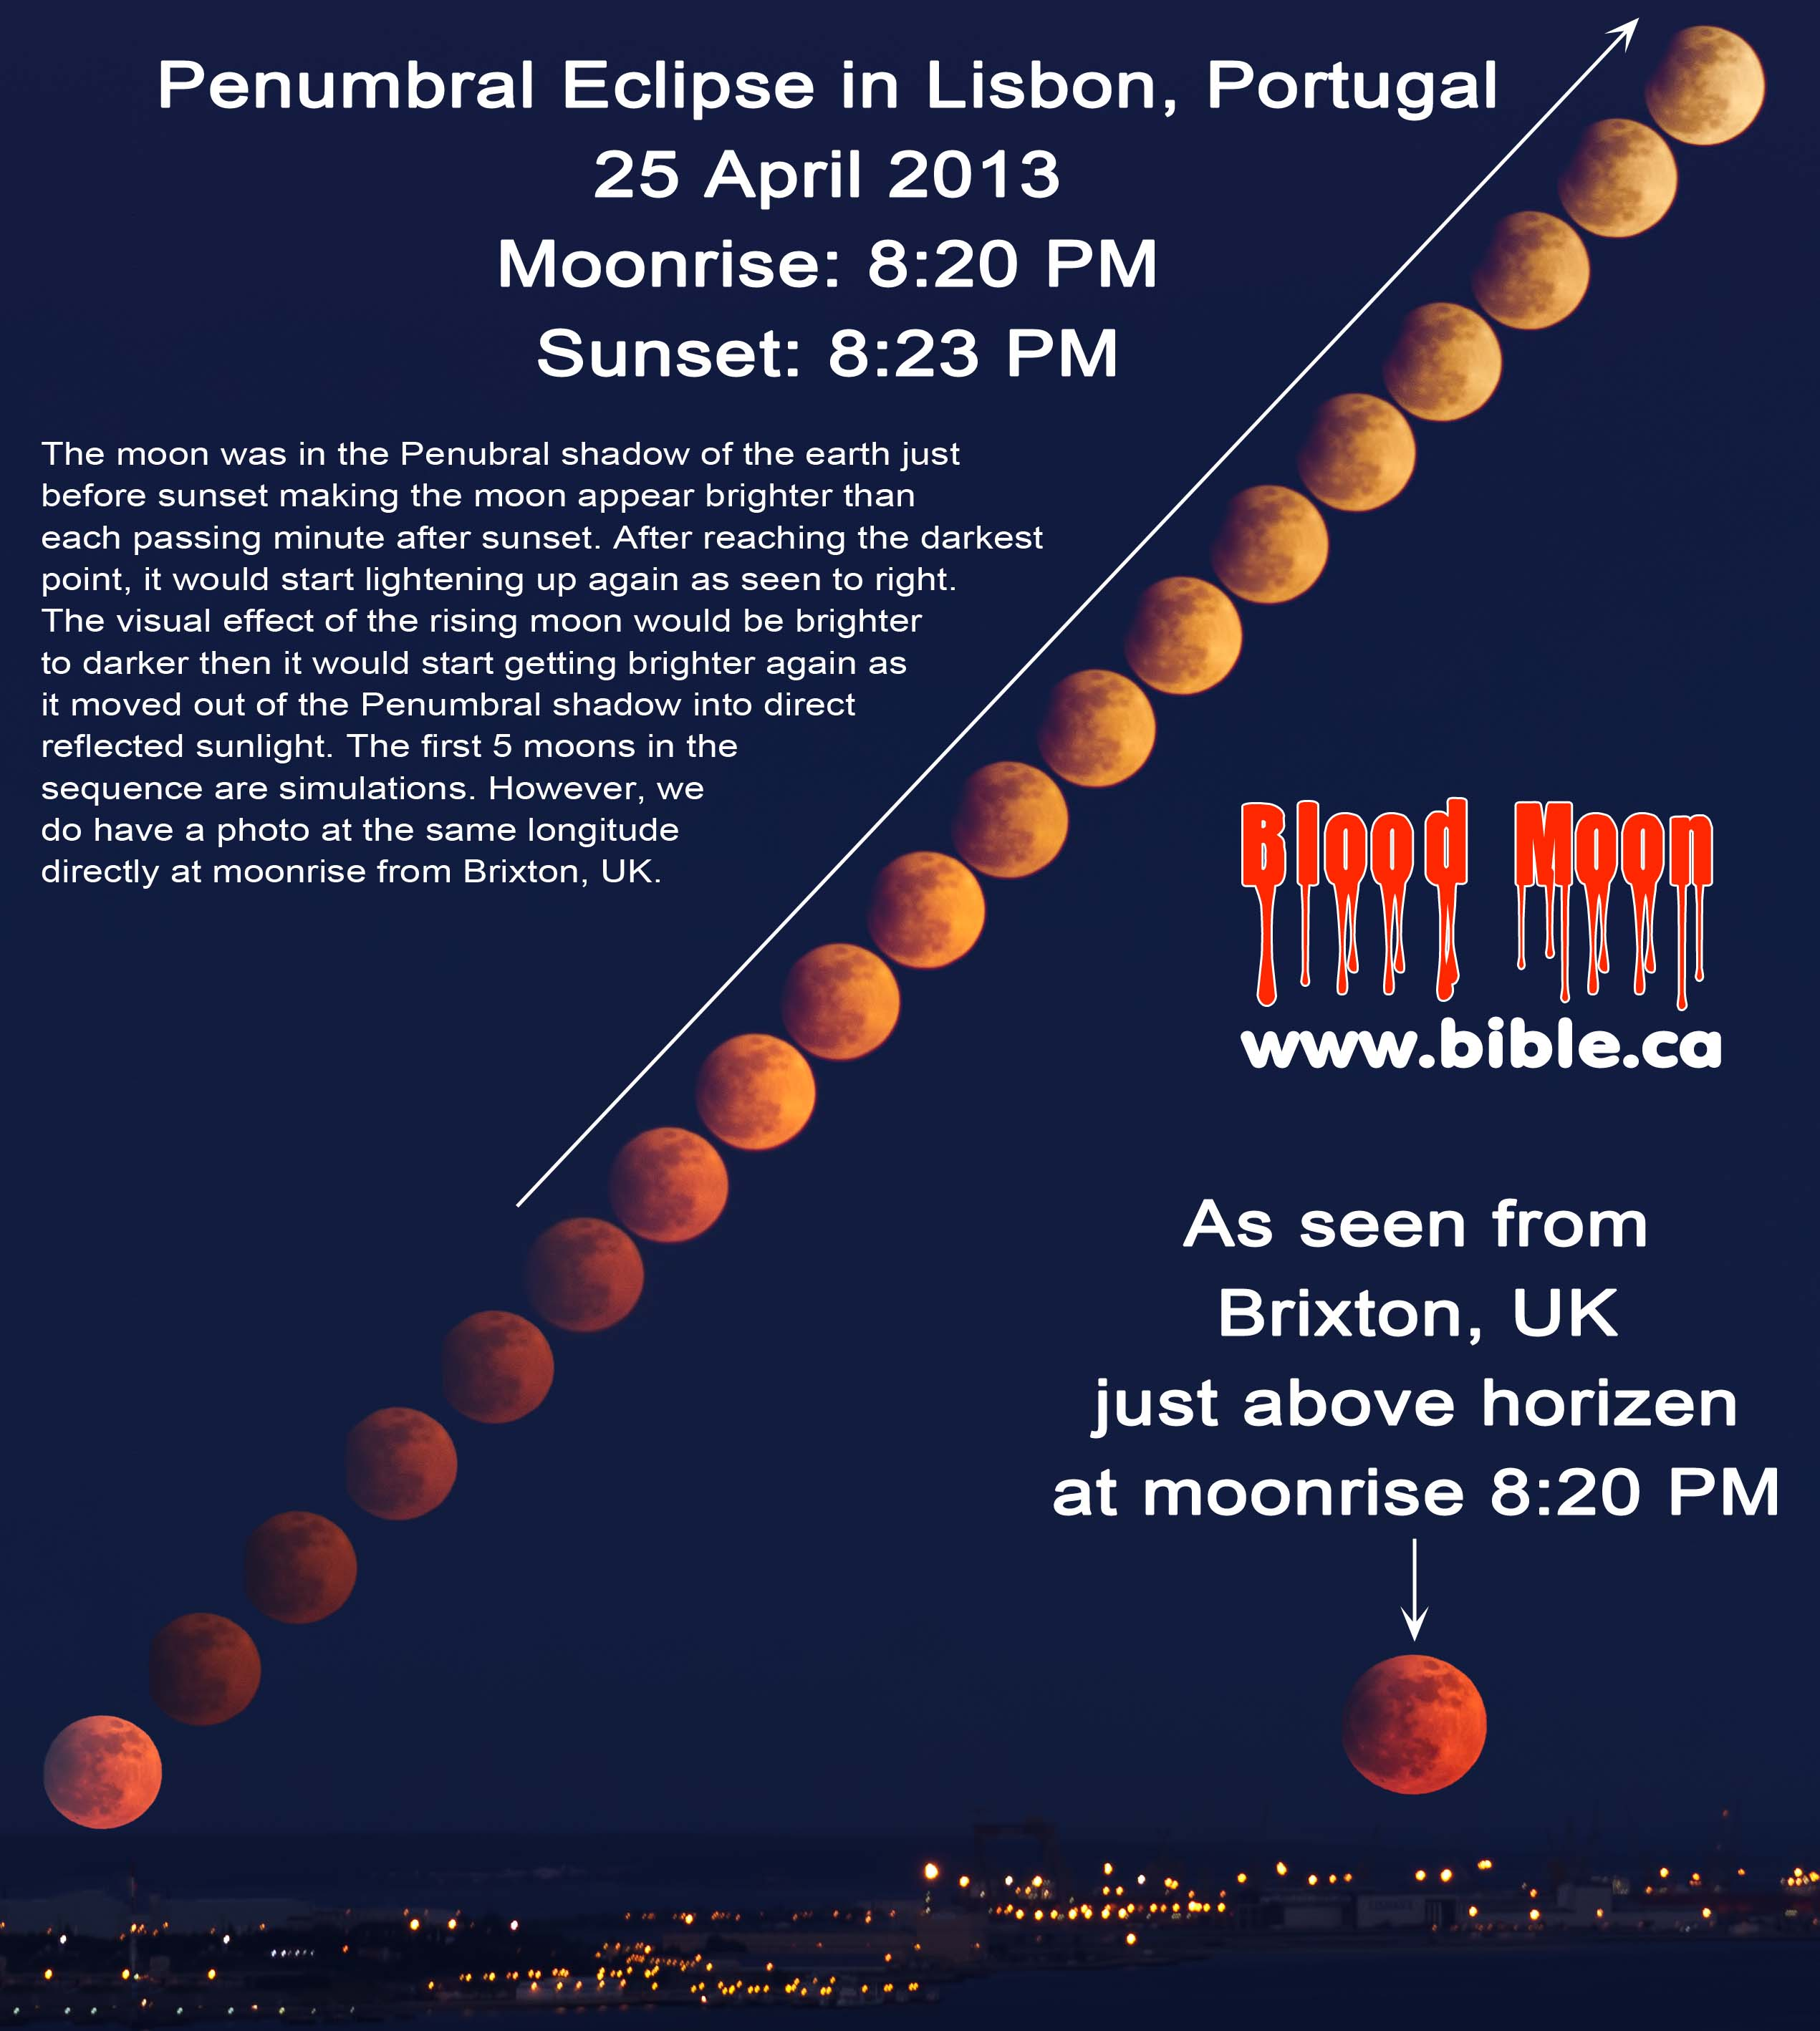 blood moon eclipse quotes - photo #11